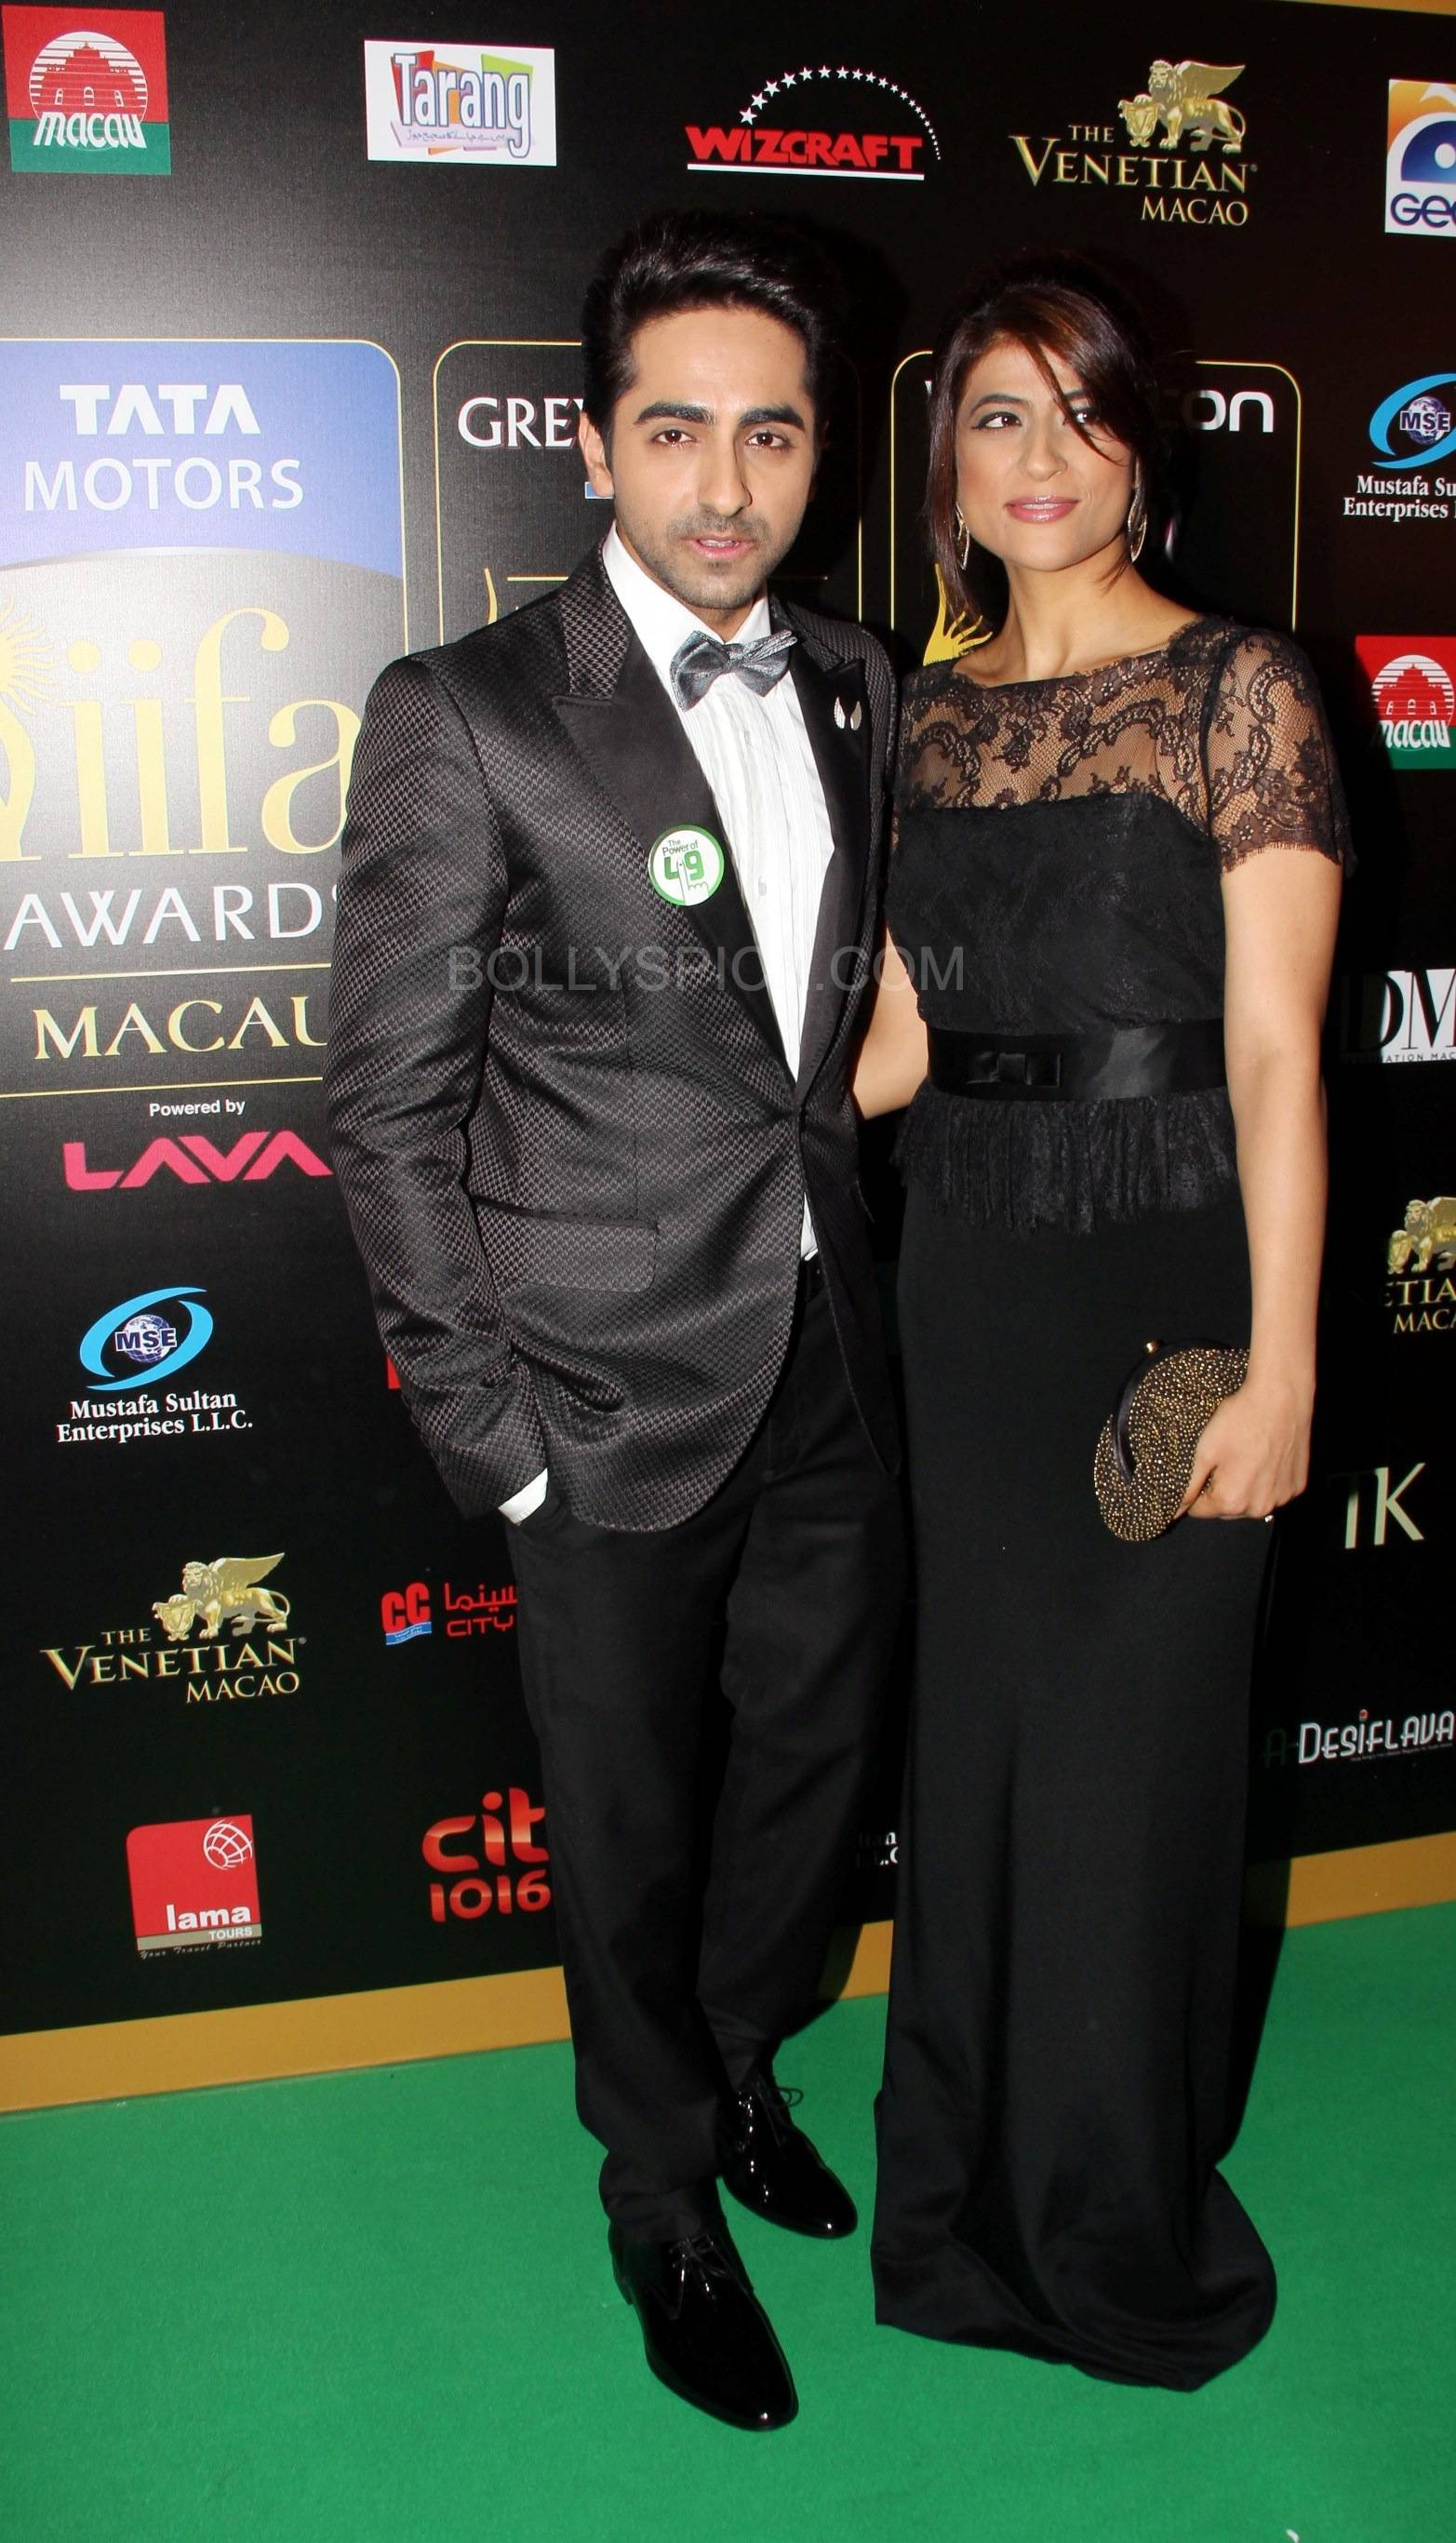 Ayushmann Khuranna at IIFA Rocks Green carpet More from IIFA Rocks including winners and more Green Carpet pics! Pics added!